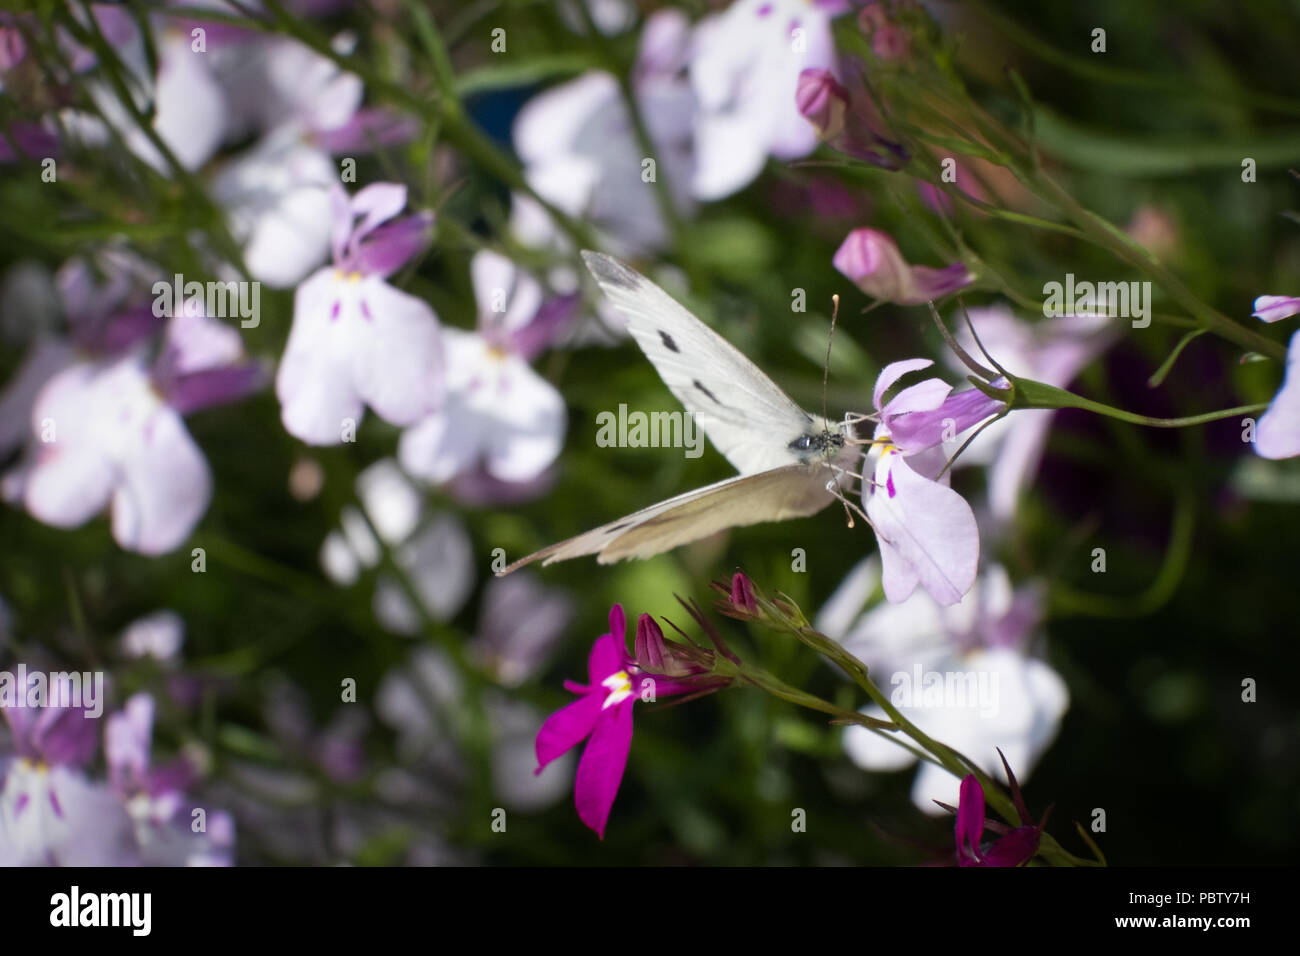 Close up photos of white and purple lobelia  with a cabbage white butterfly resting in the foreground - Stock Image